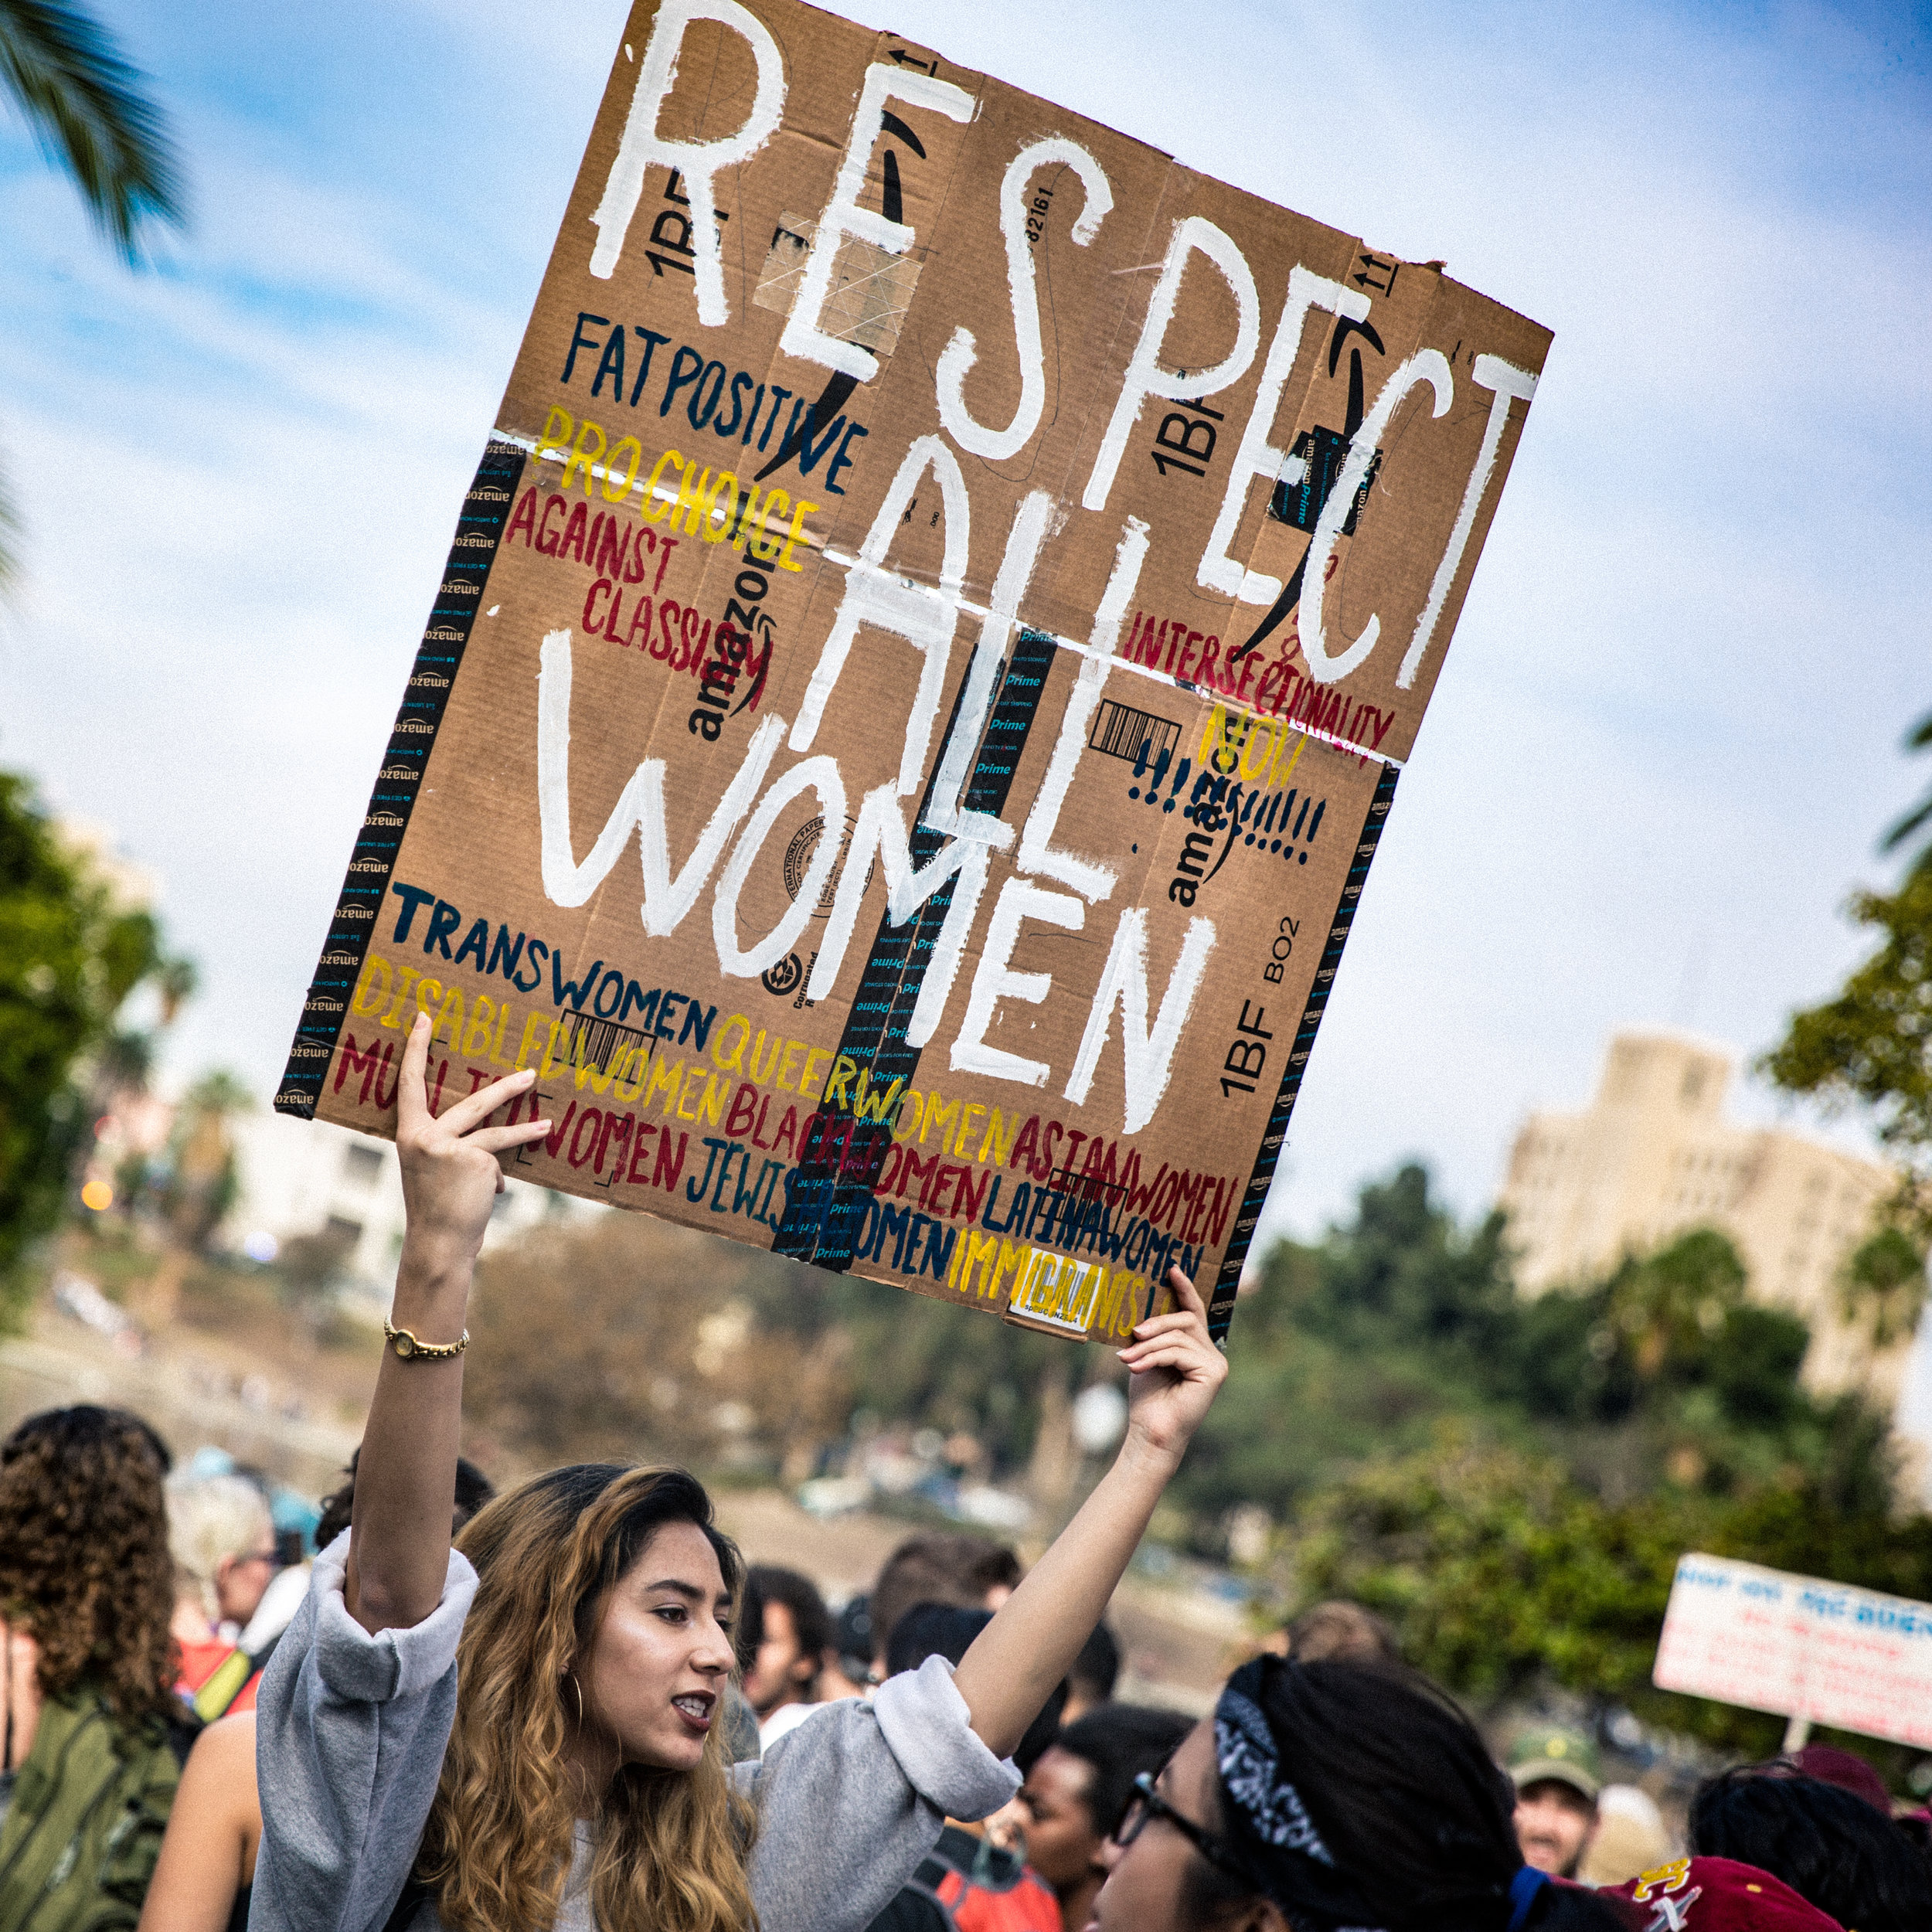 - Formed to educate the community and advise the Contra Costa County Board of Supervisors and other entities on issues relating to the conditions of women in the county.